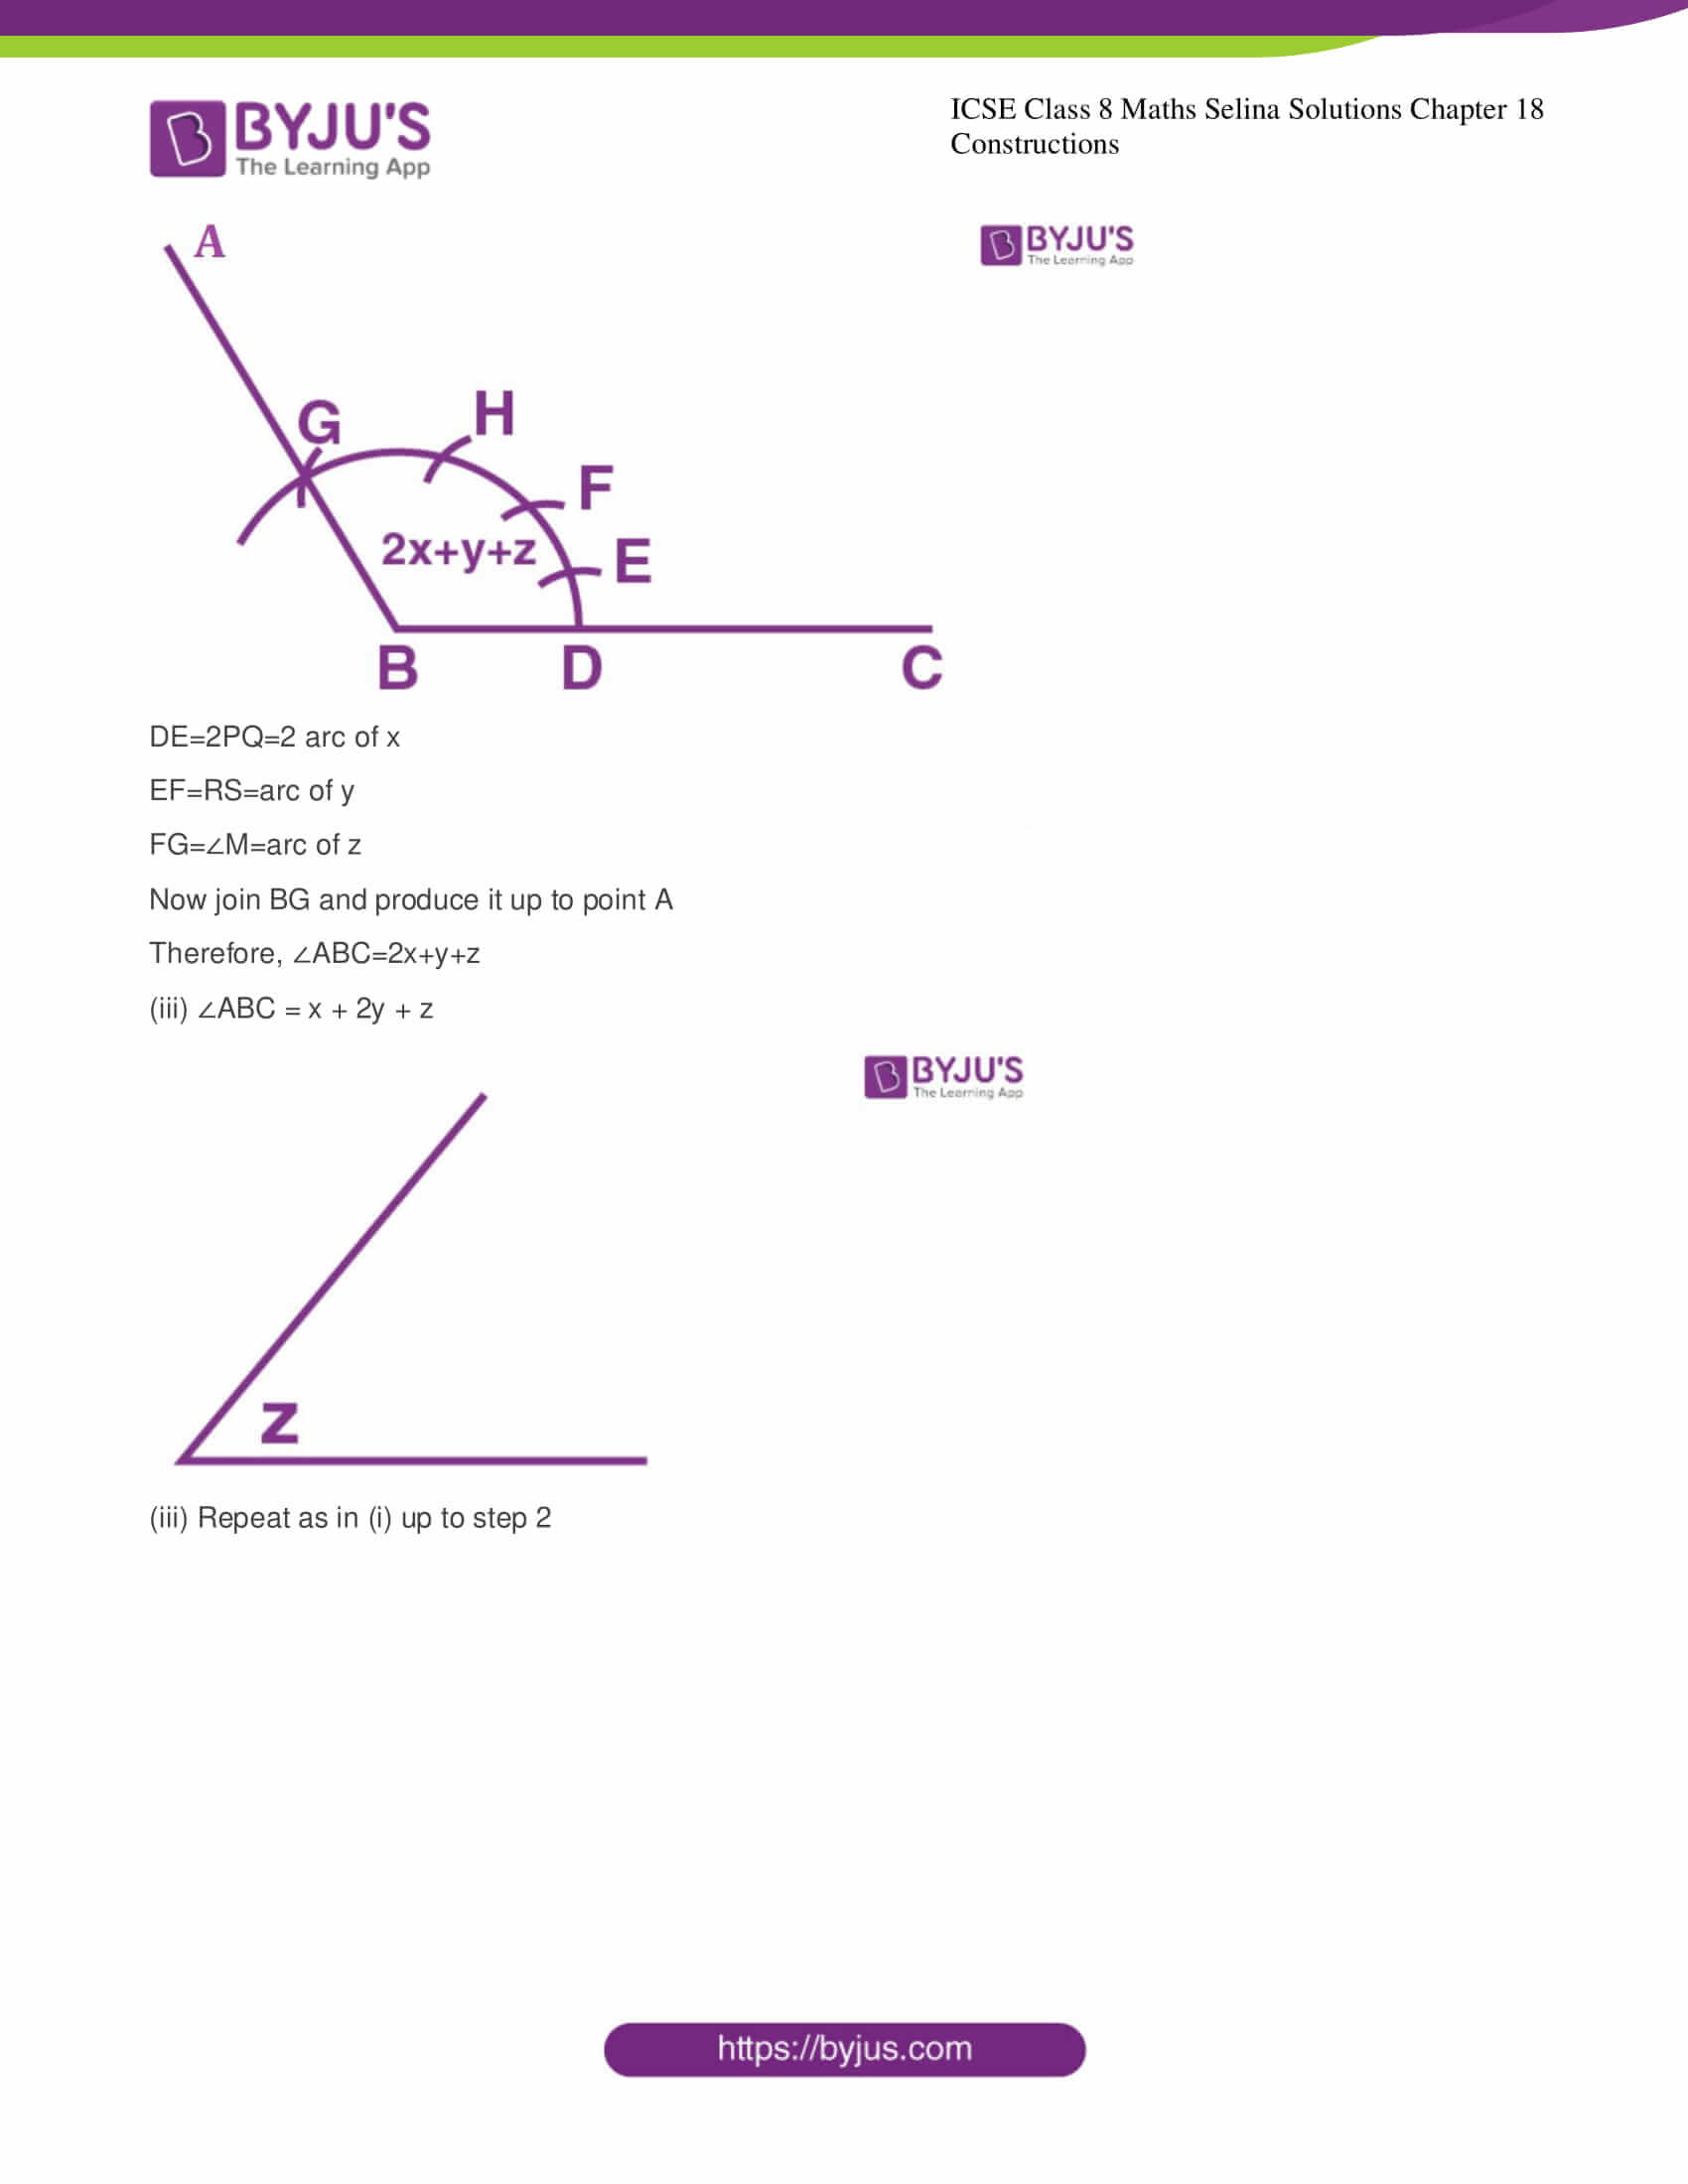 icse class 8 maths may3 selina solutions chapter 18 constructions 05